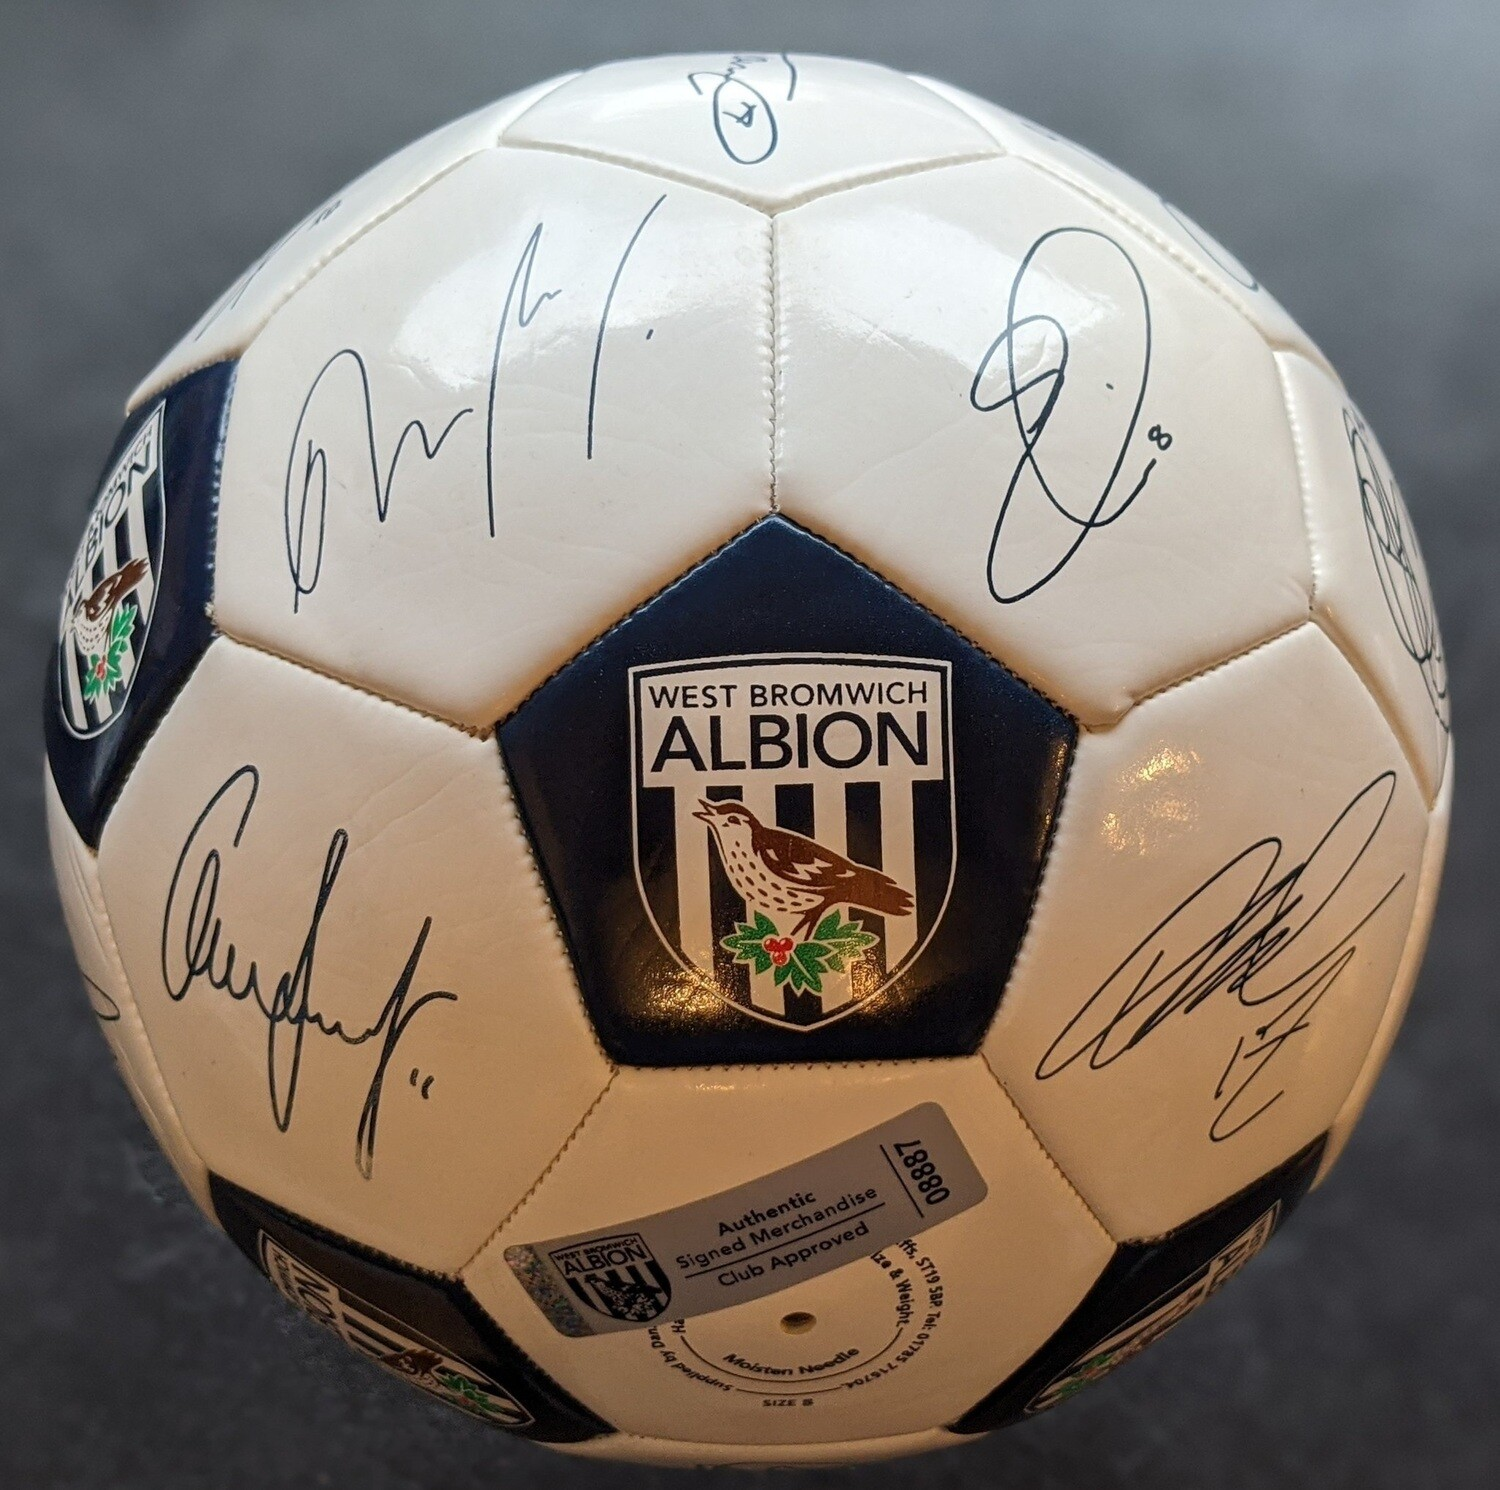 WEST BROMWICH ALBION SIGNED FOOTBALL